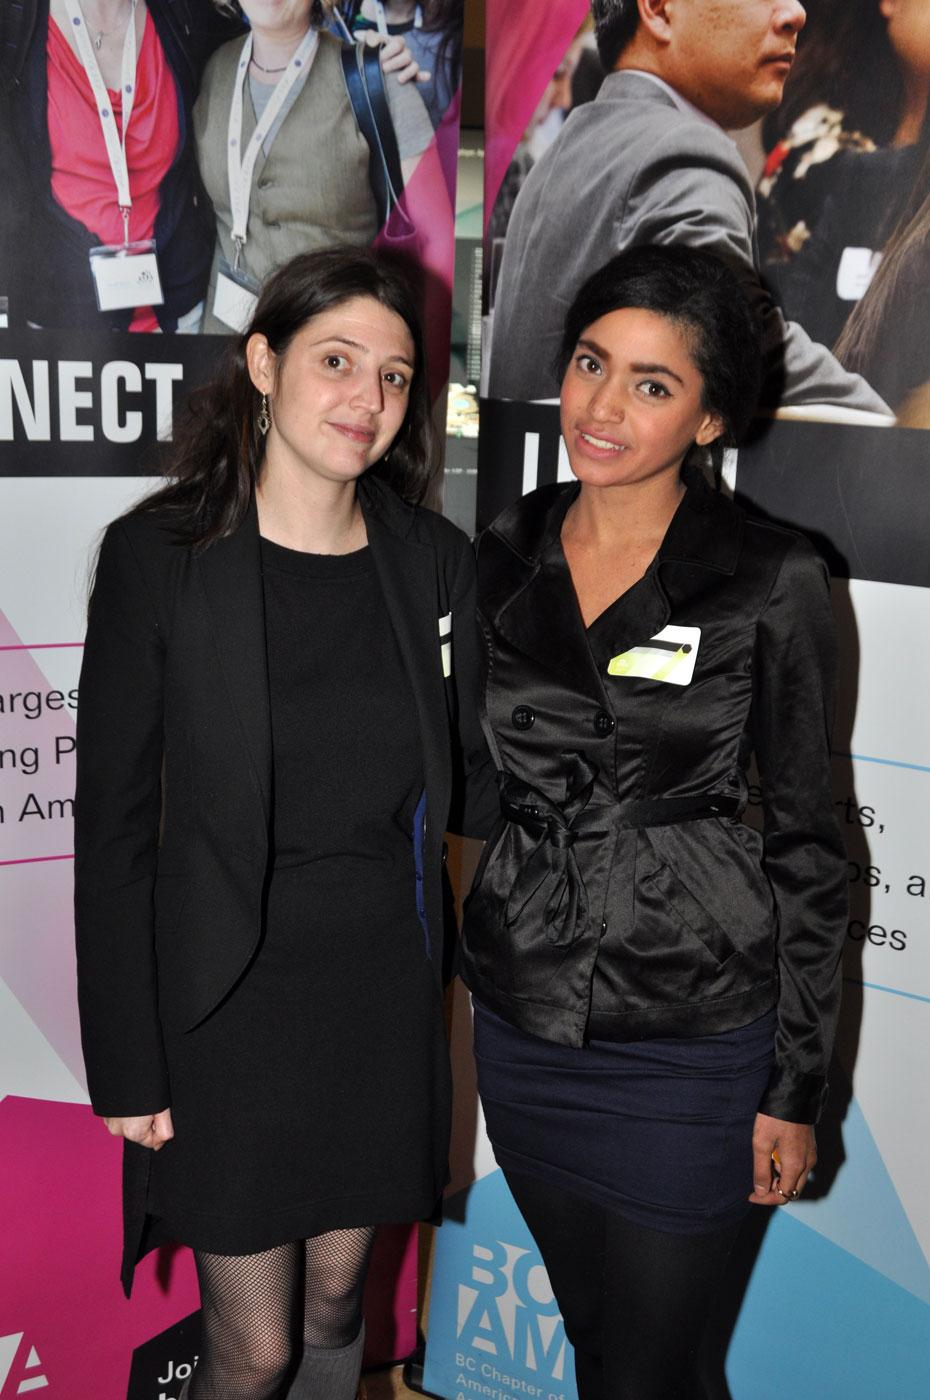 Ashleigh Withall, Boilingpoint Group marketing co-ordinator; and Shilpa Nayak, Skyrocket Digital business development.